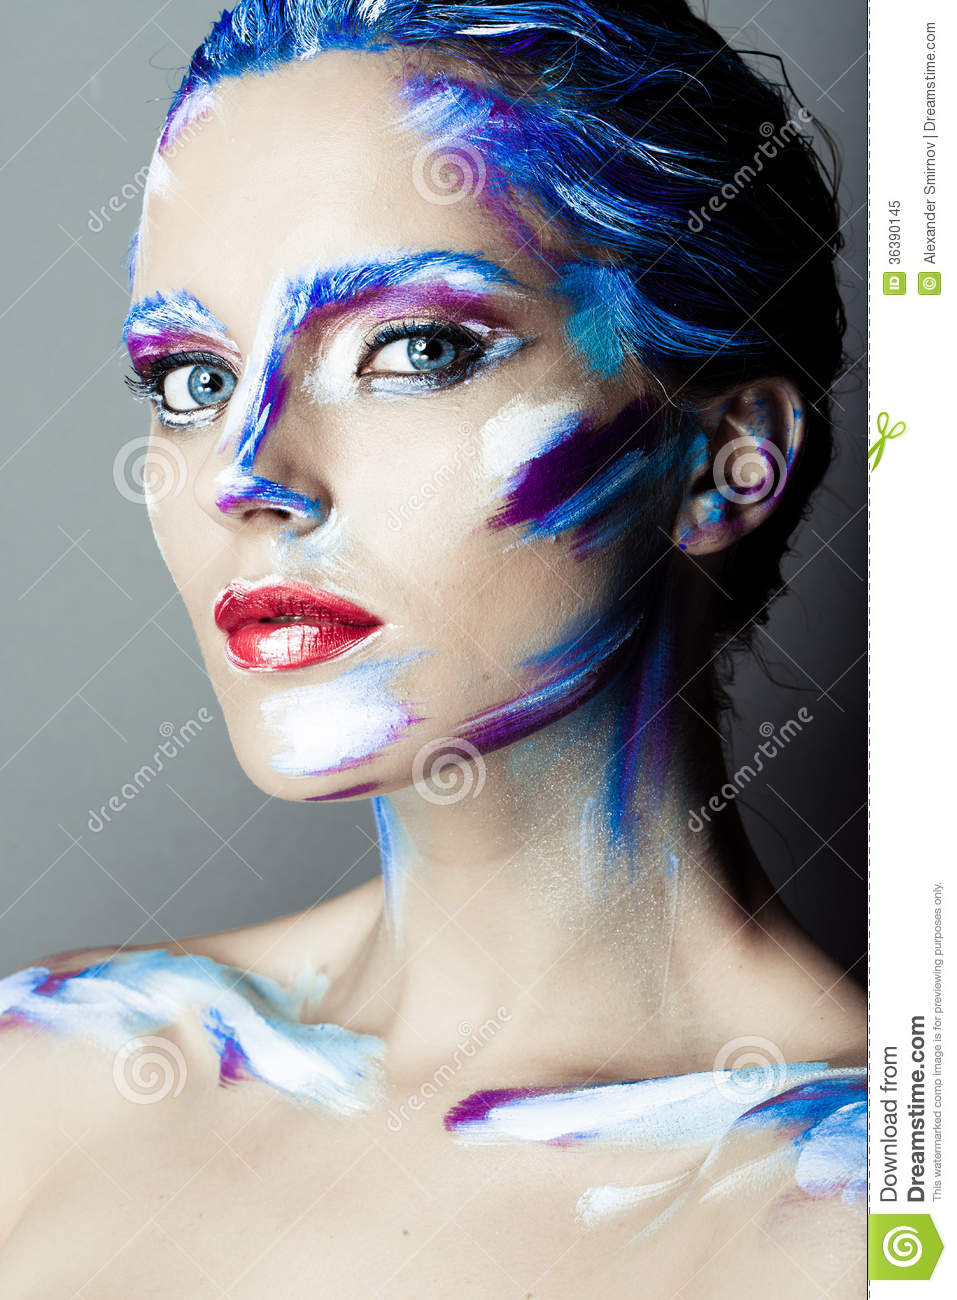 Creative Art Makeup Of A Young Girl With Blue Eyes Royalty